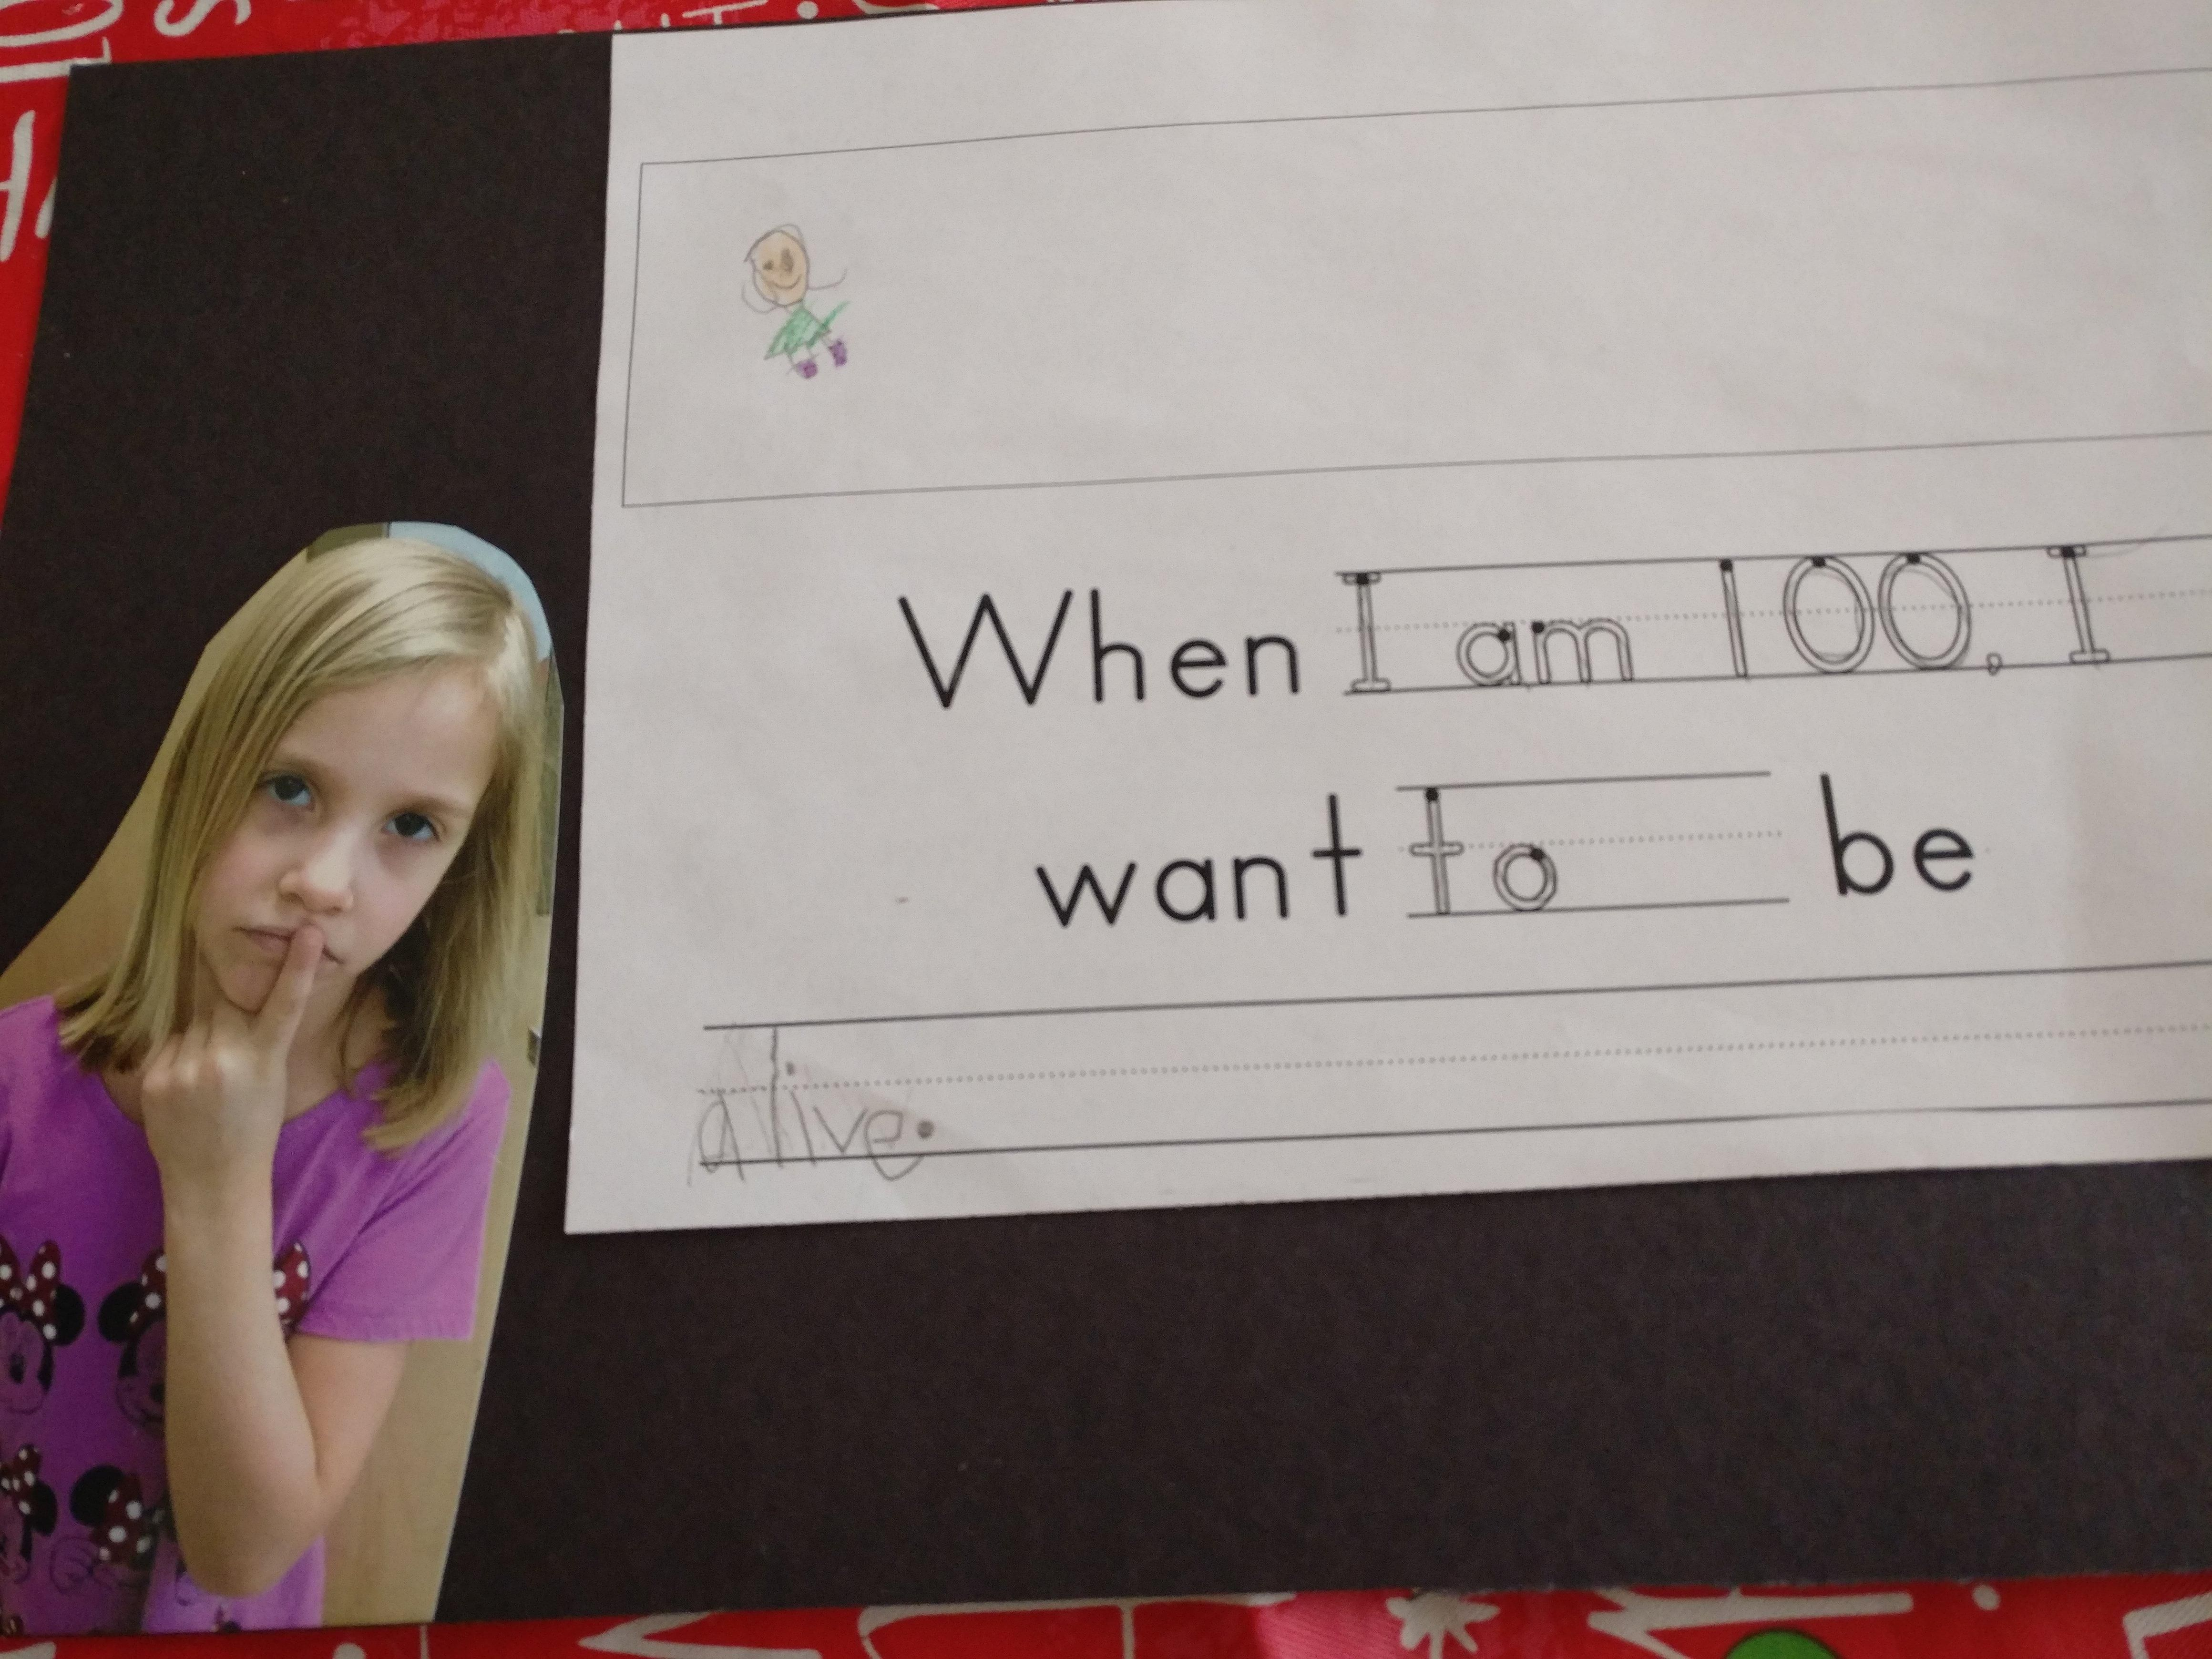 When I am 100, I want to be...